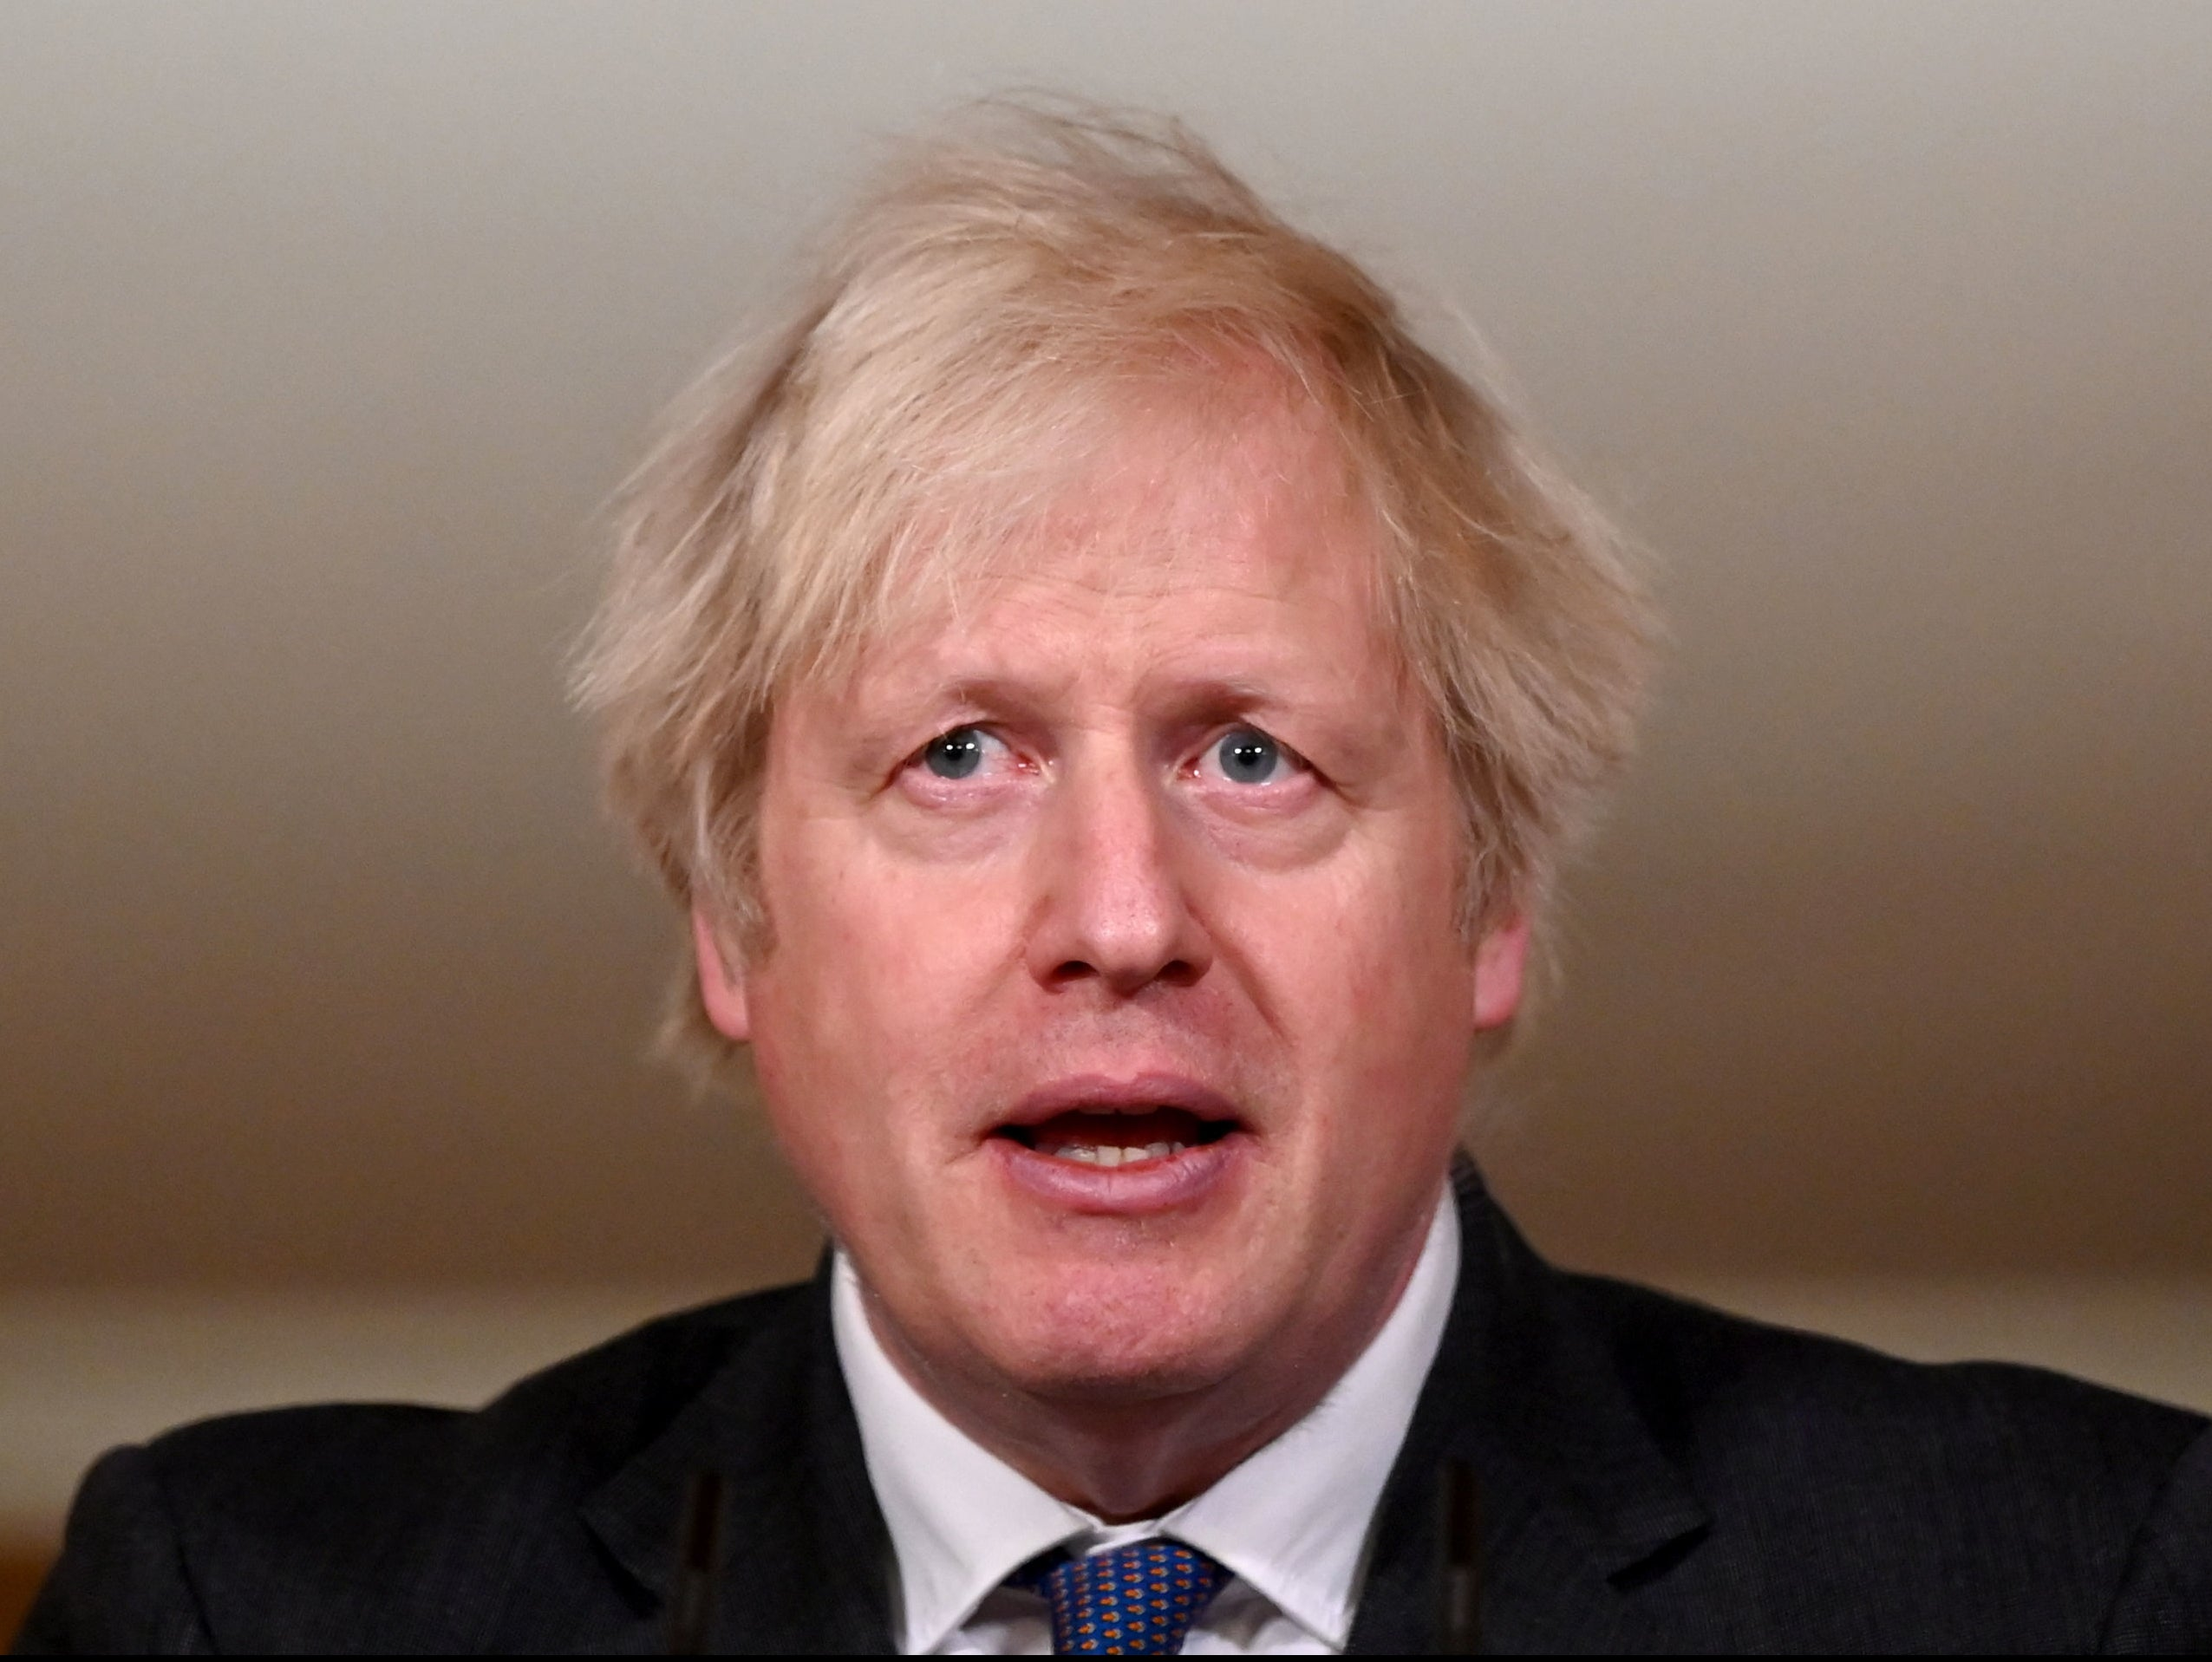 Boris Johnson news live: UK could become 'failed state', PM warned